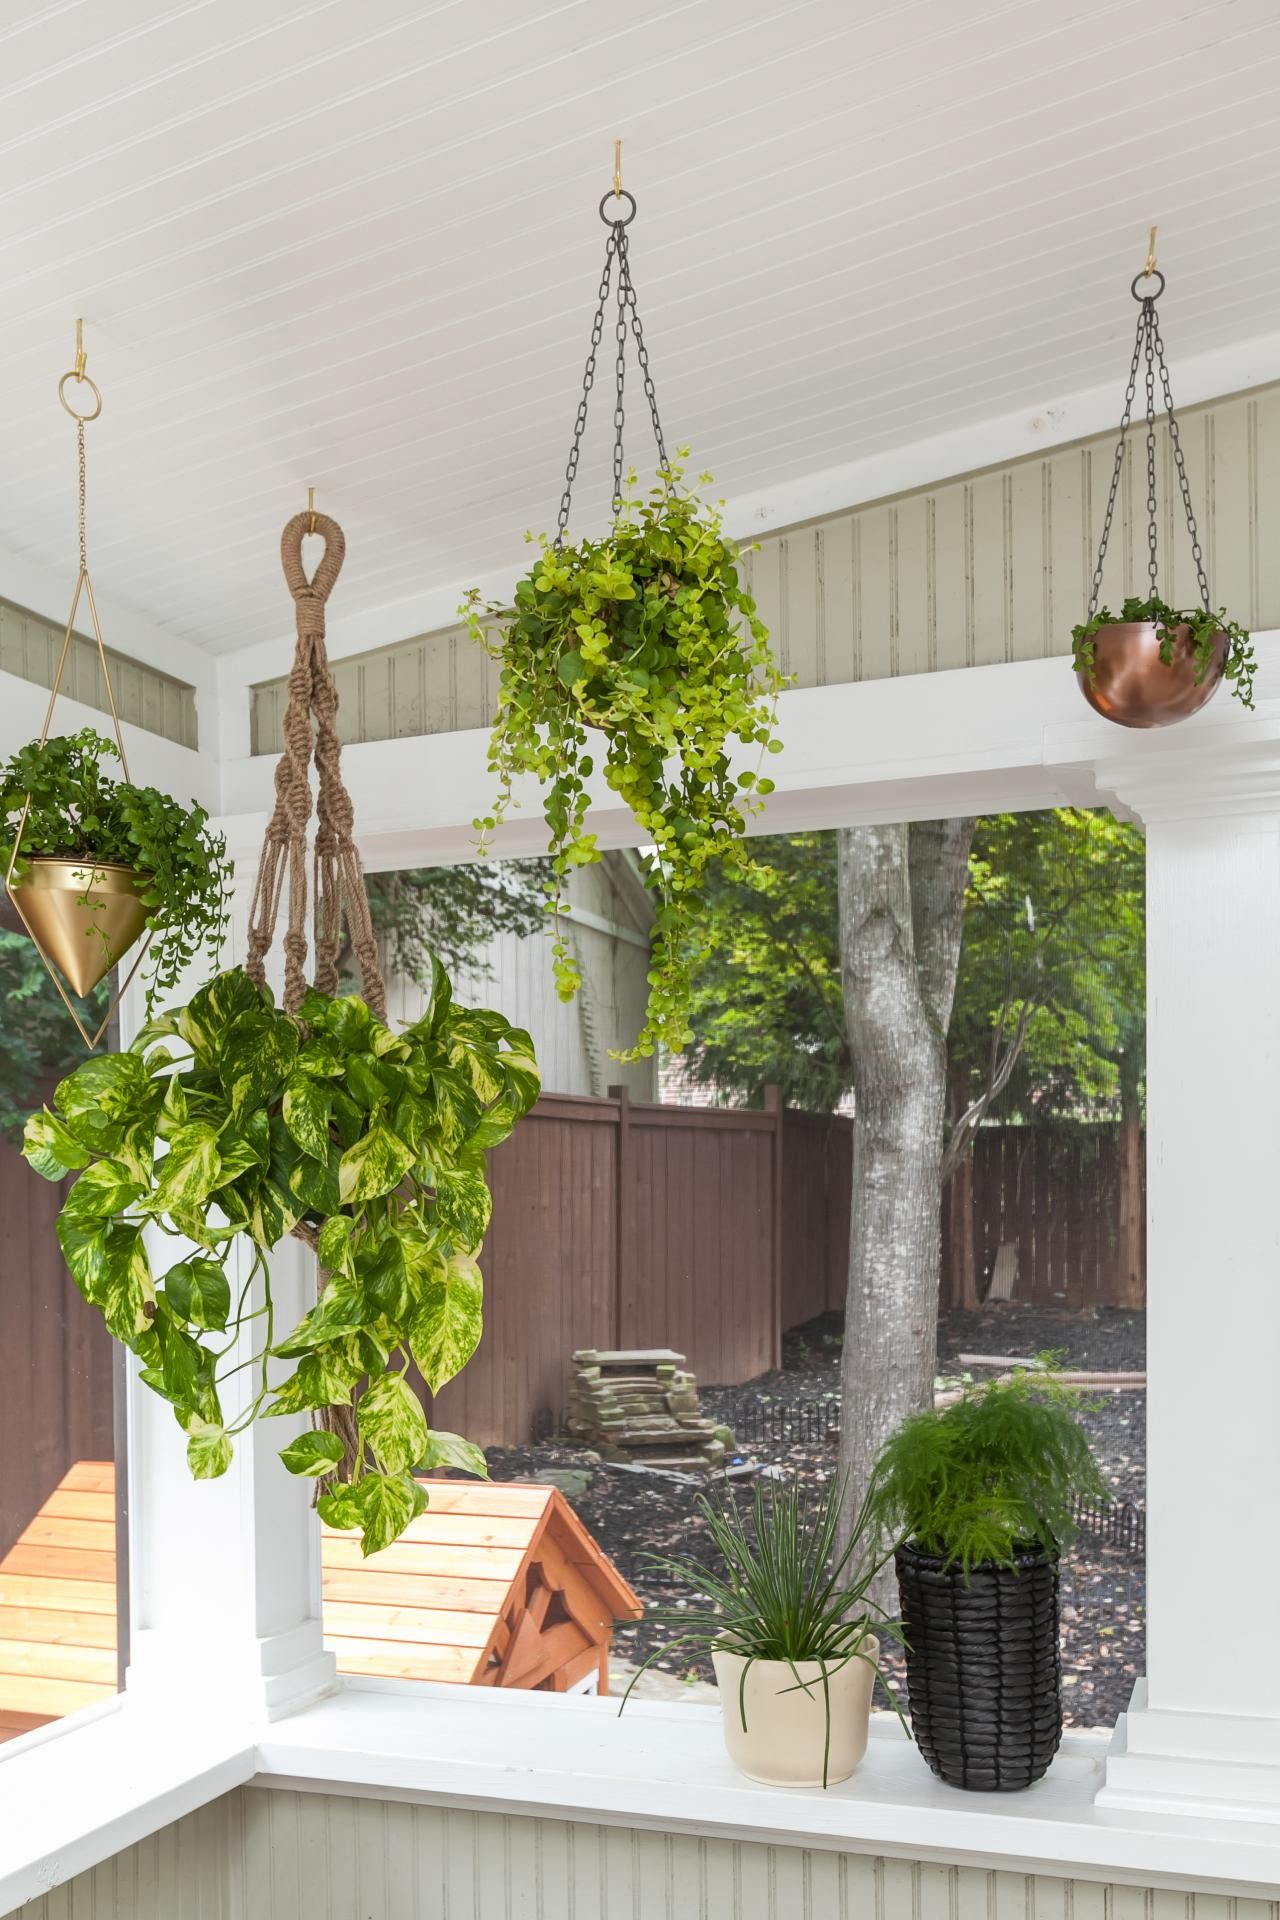 12 Low-Budget Porch Makeover Ideas Just in Time for Summer